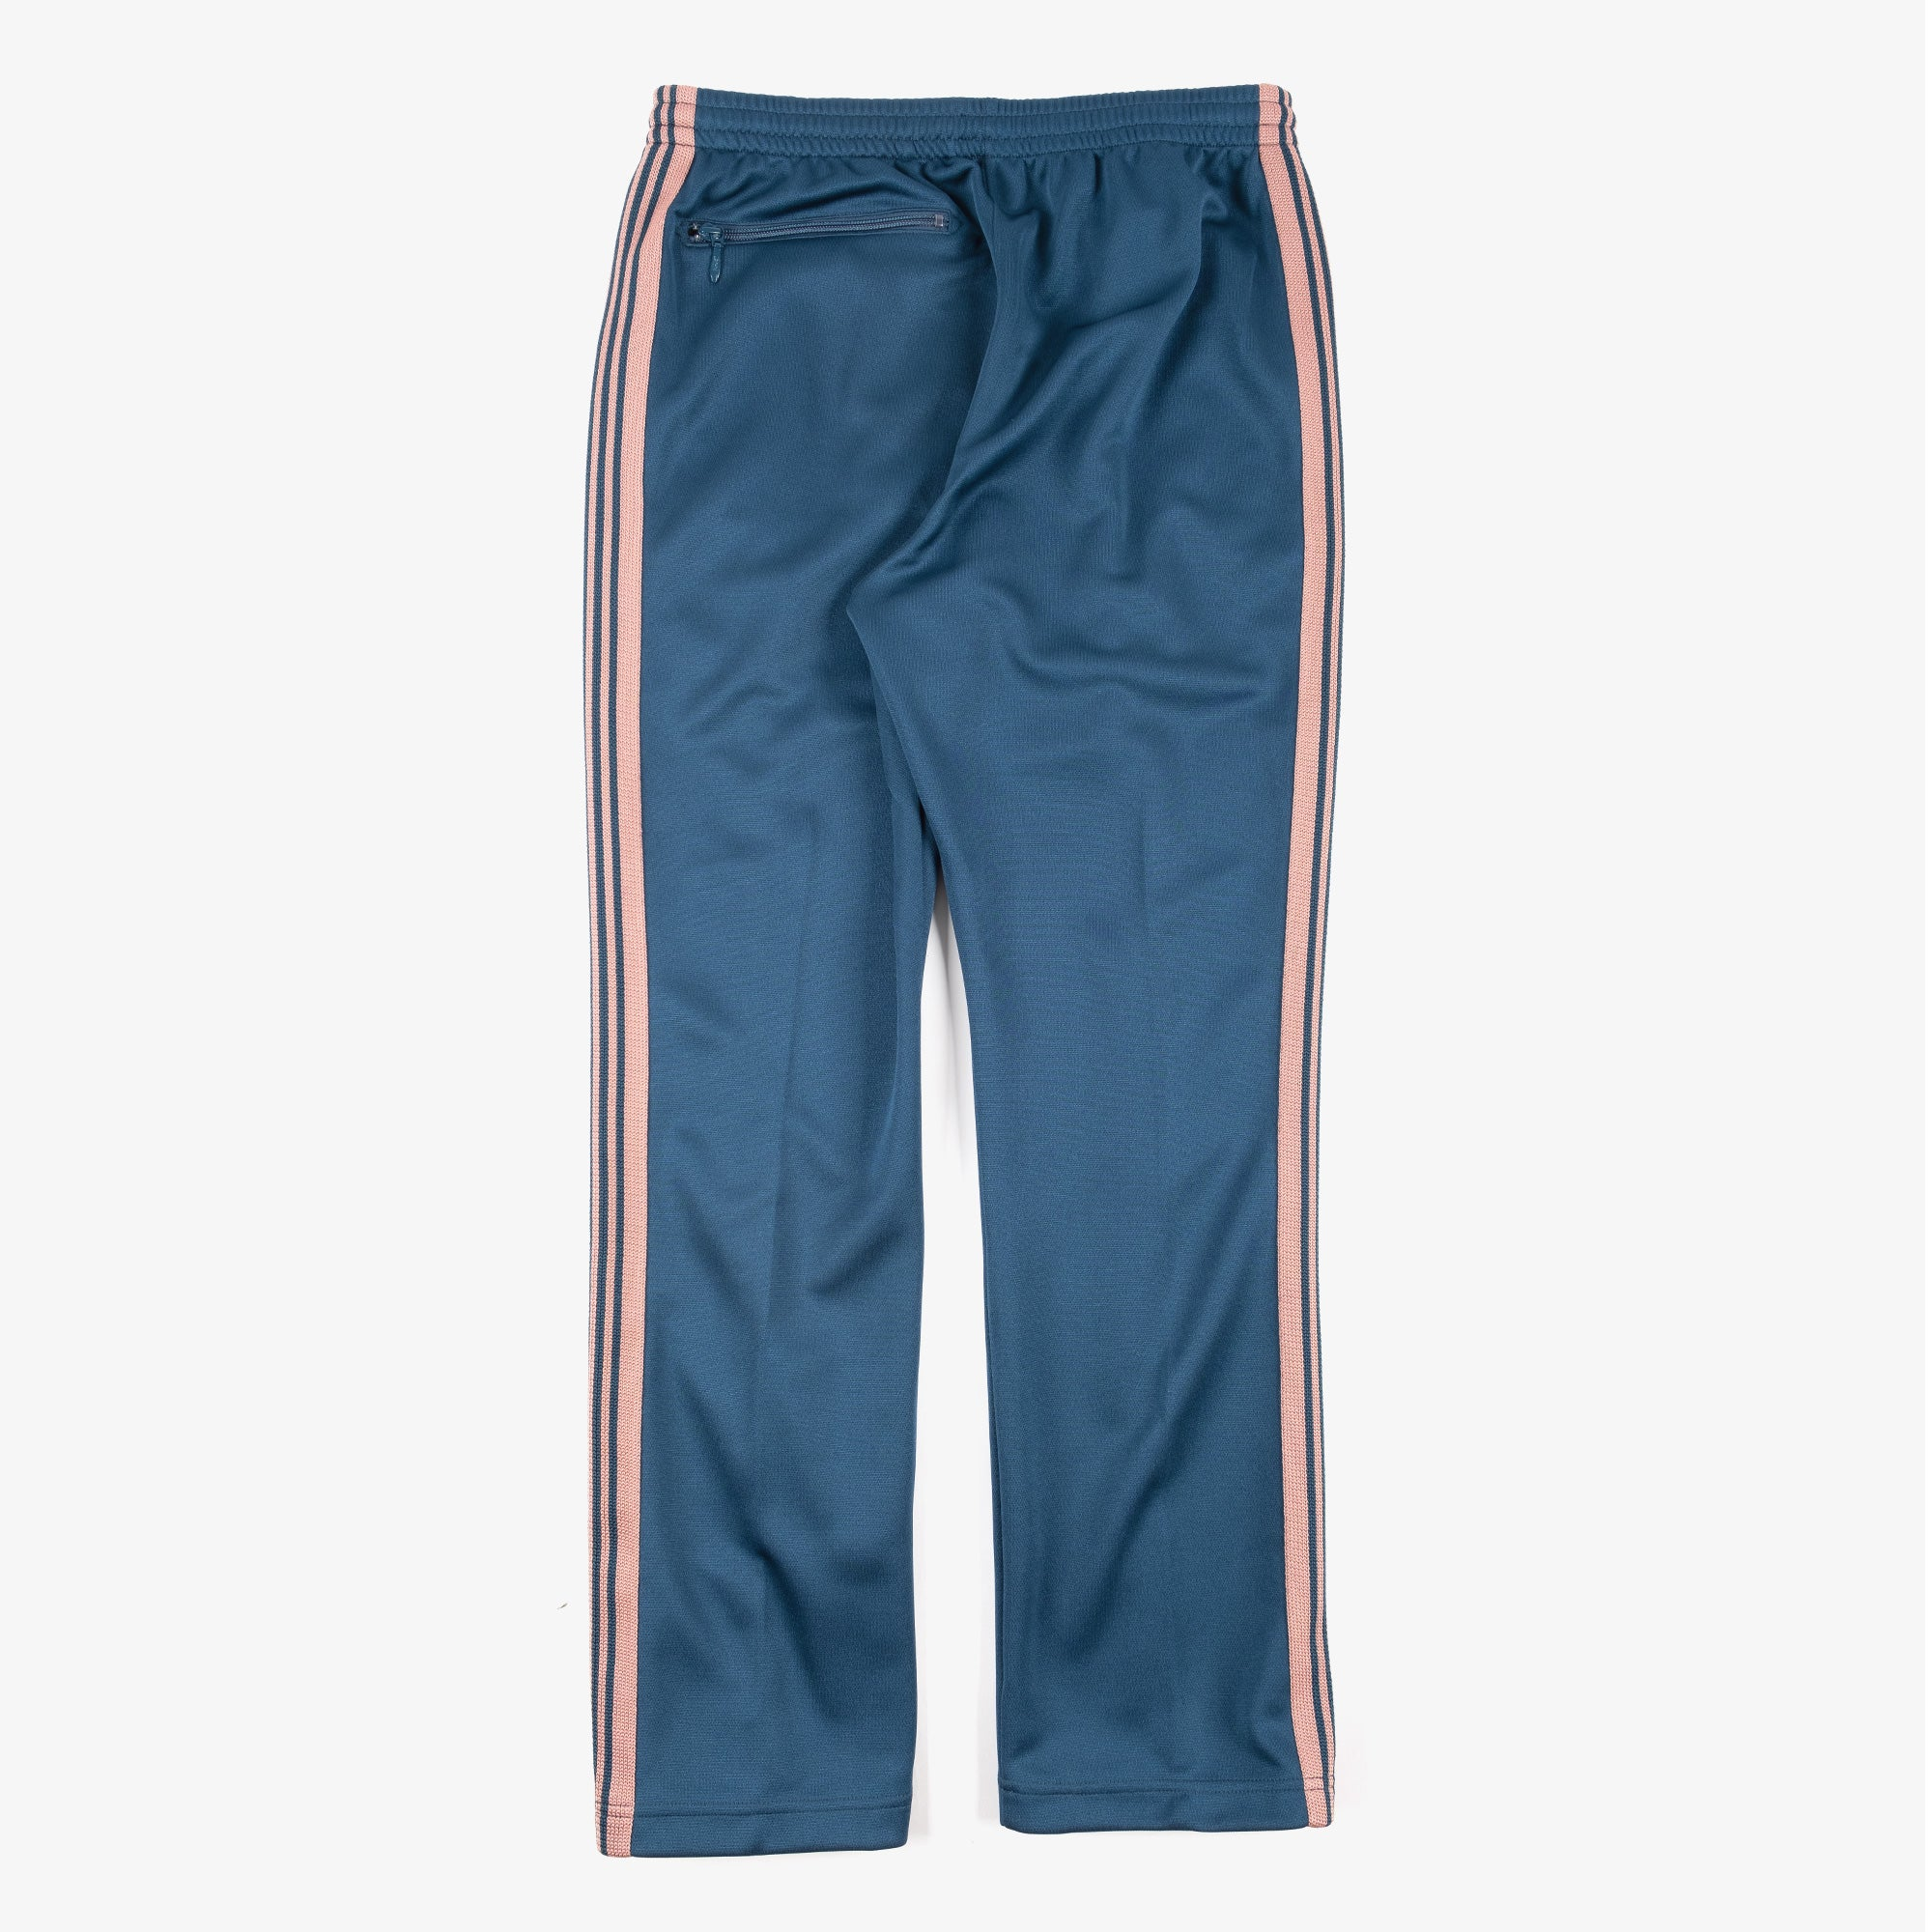 Needles M' Narrow Track Pant - Poly Smooth Teal Green 4